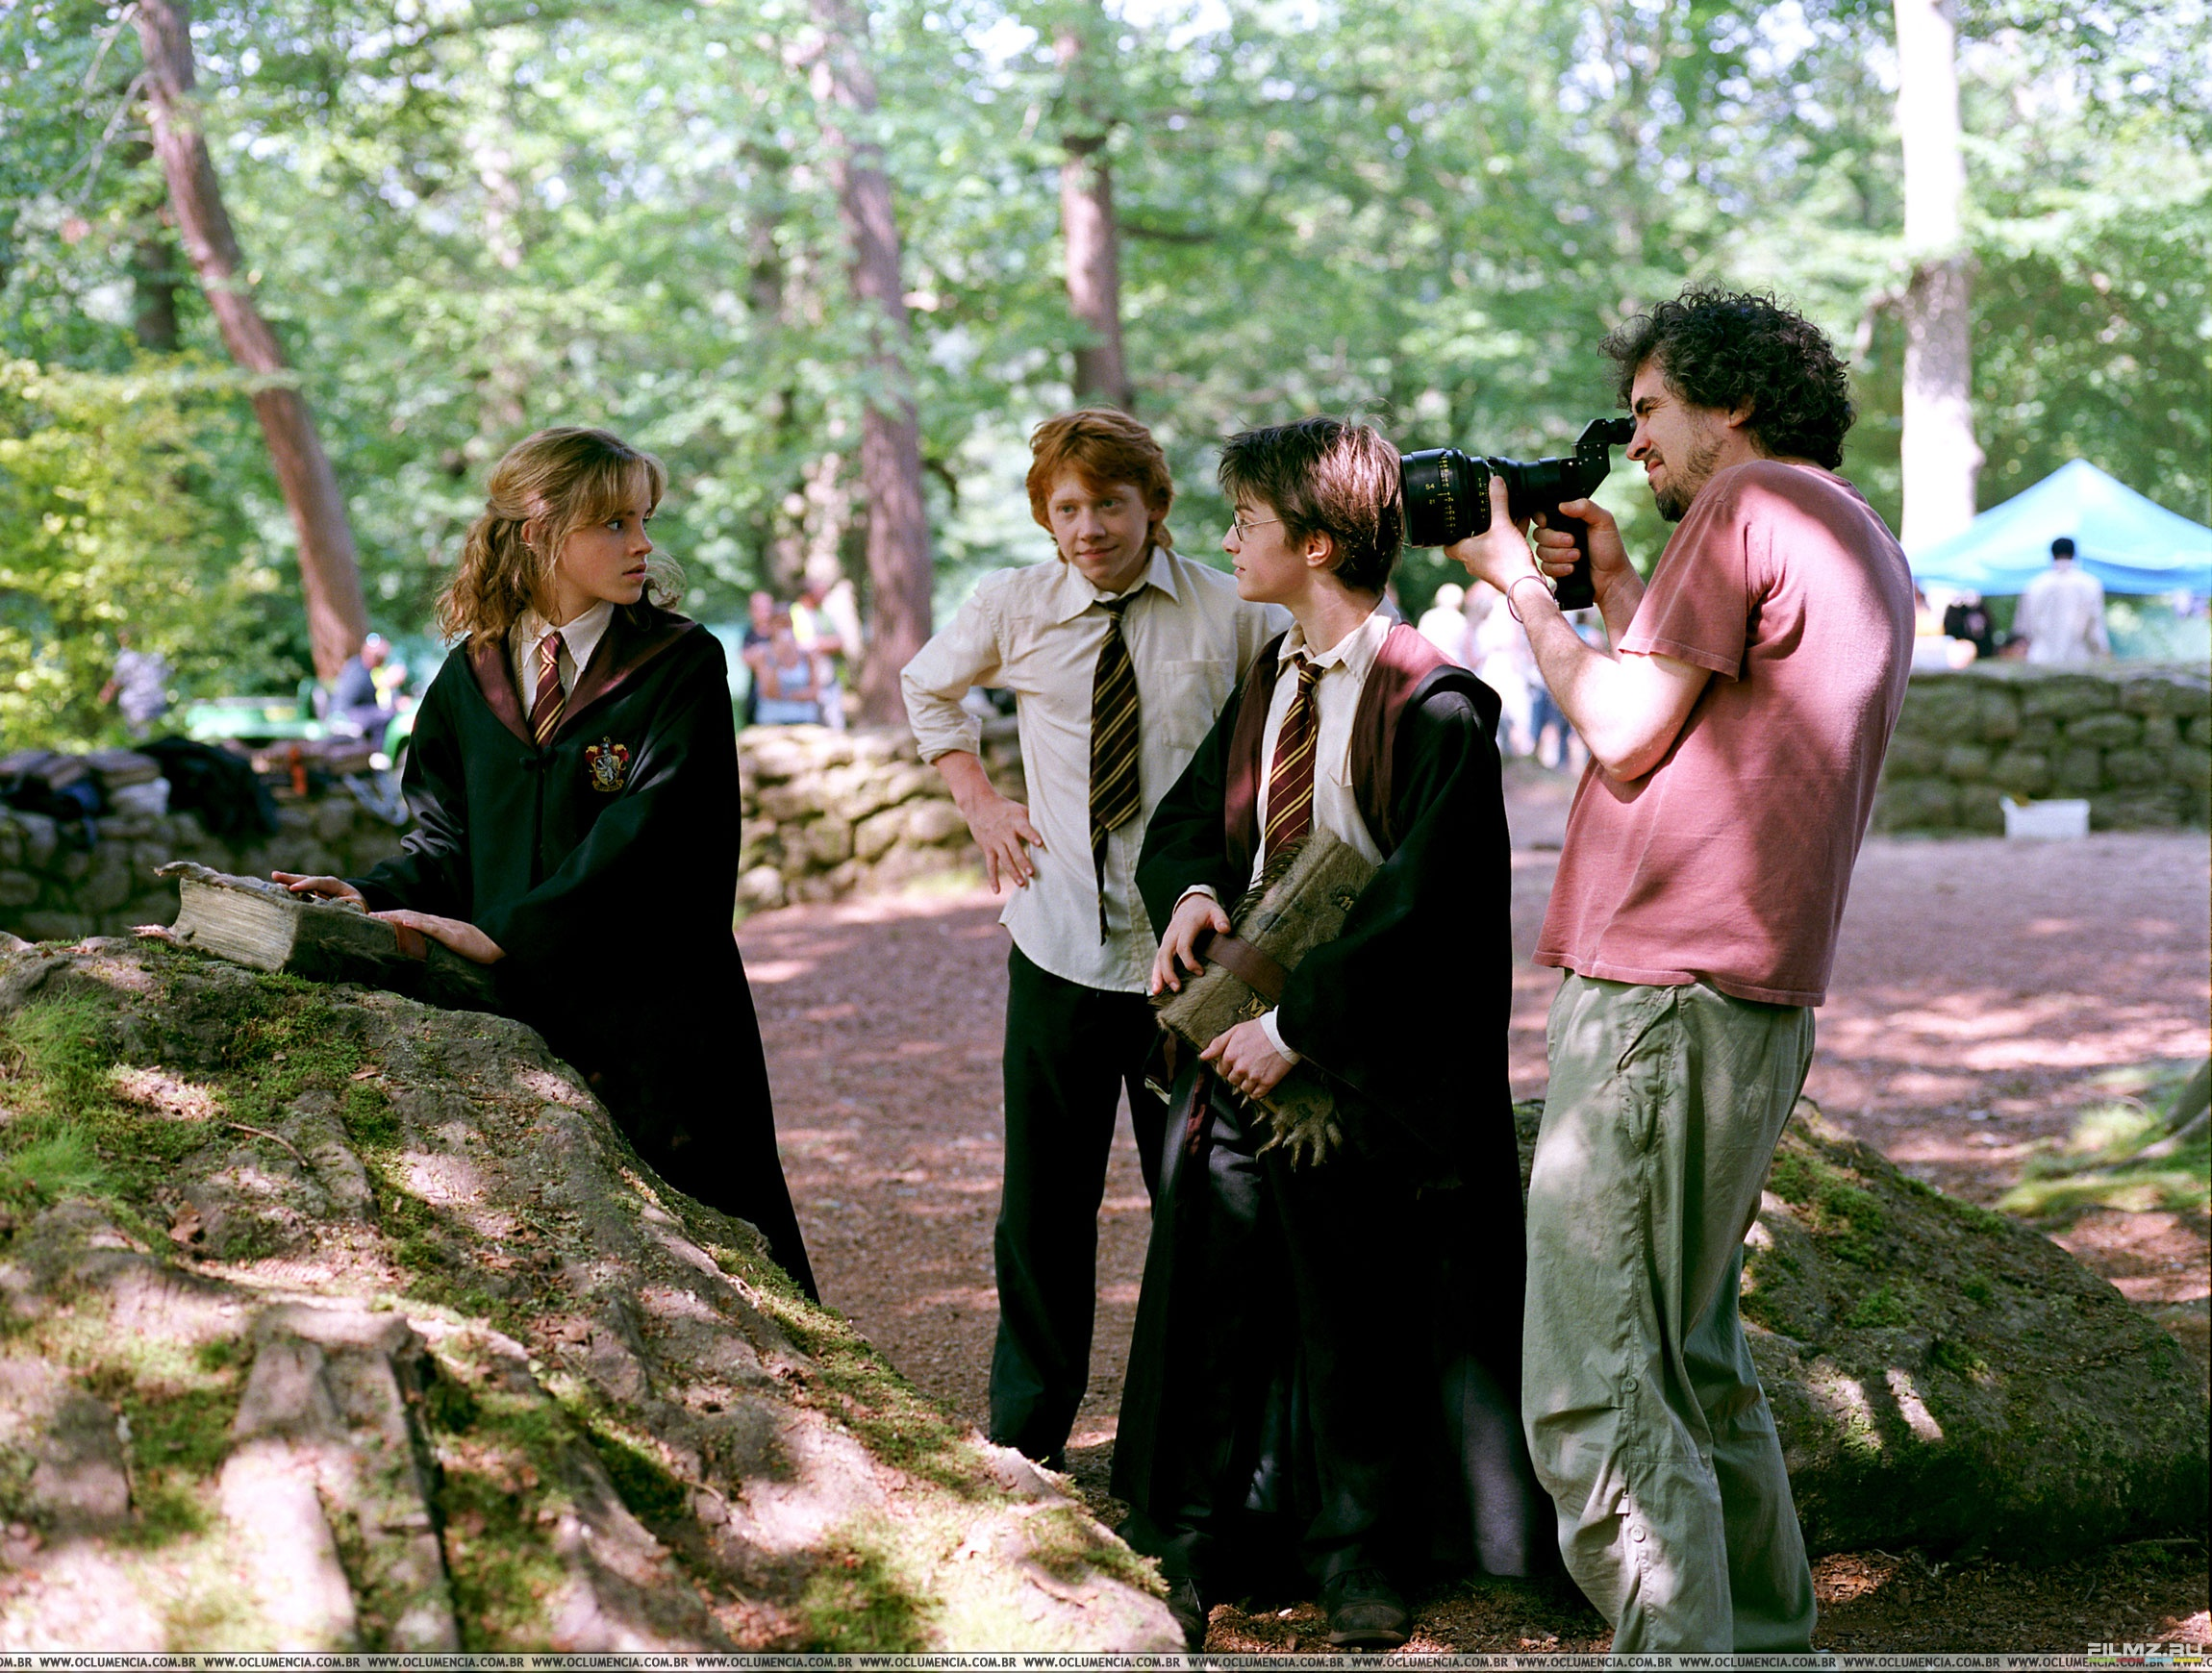 alfonso cuaron essay harry potter There's always bound to be some behind-the-scenes drama on set, and the harry potter movies, which filmed over ten years, are no exception.